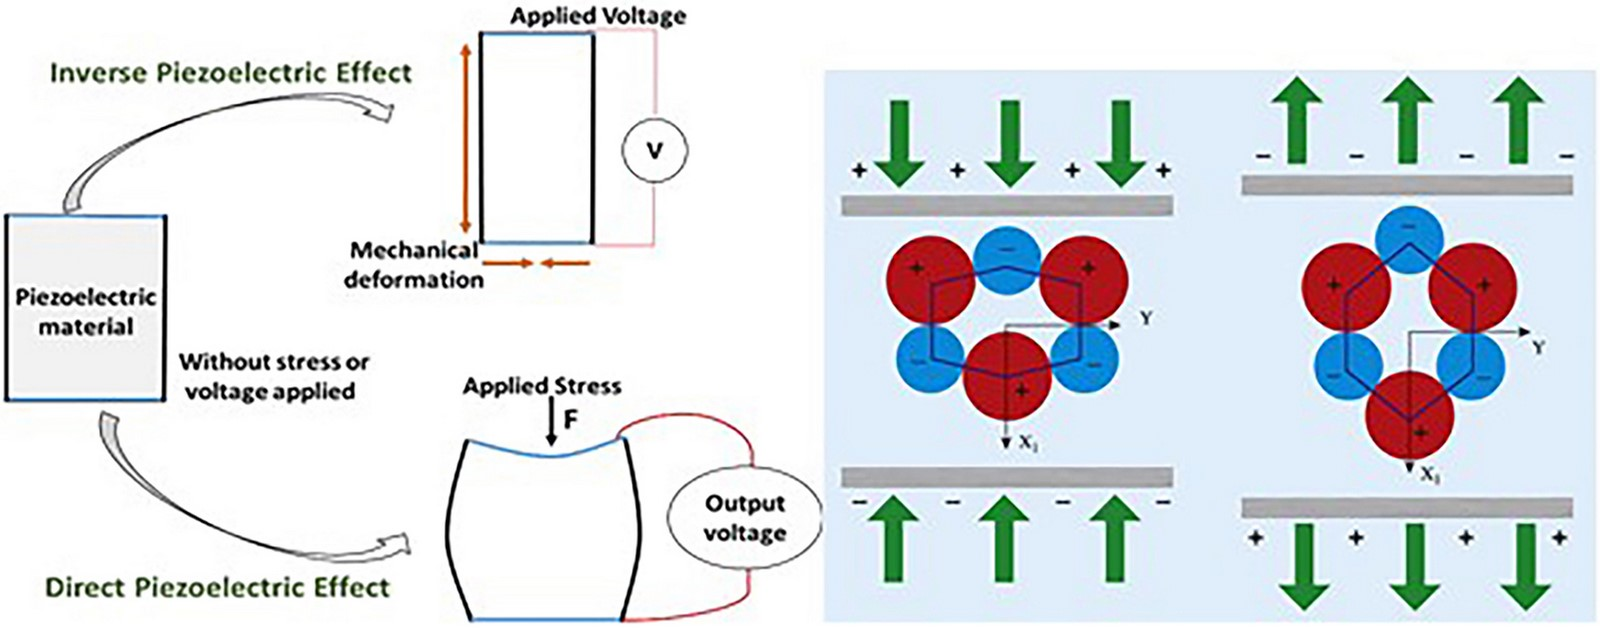 How can Piezoelectric materials be used in sustainable architecture? - Sheet1